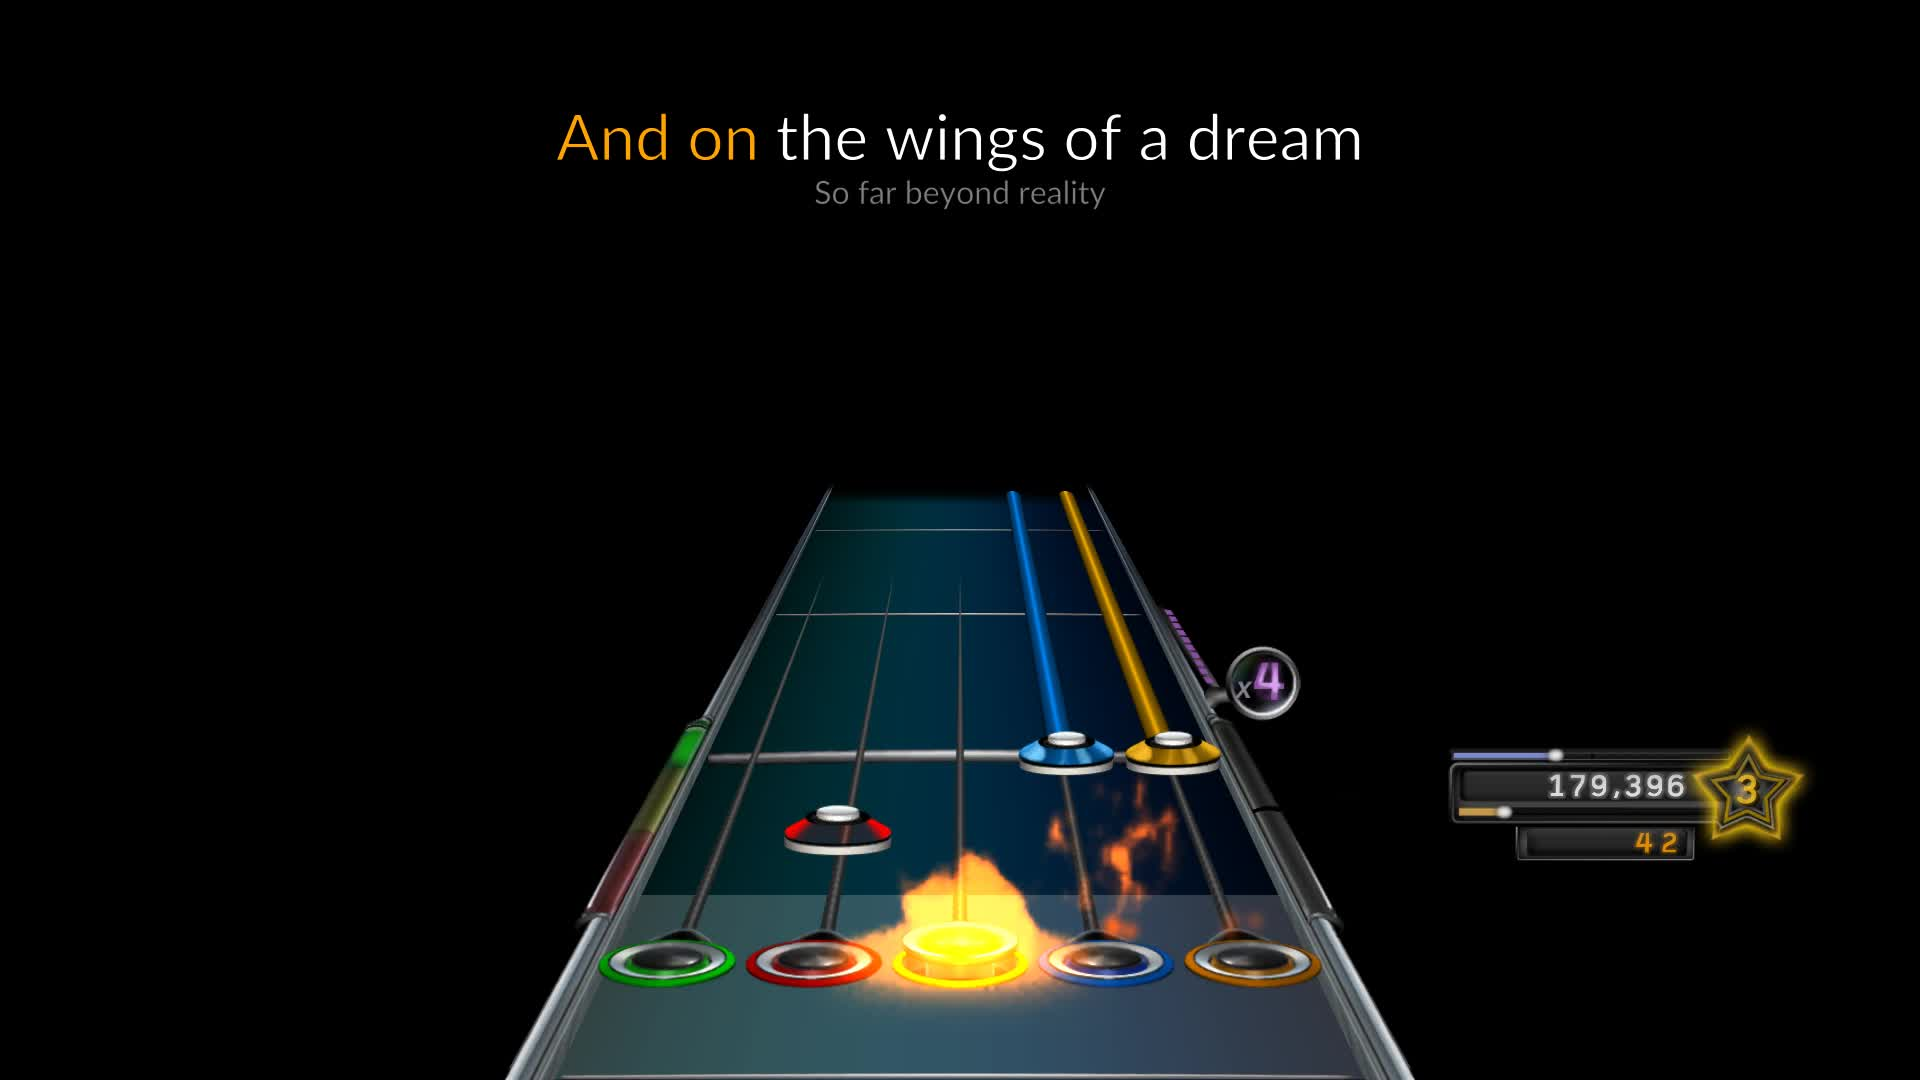 Clone Hero Gifs Search | Search & Share on Homdor